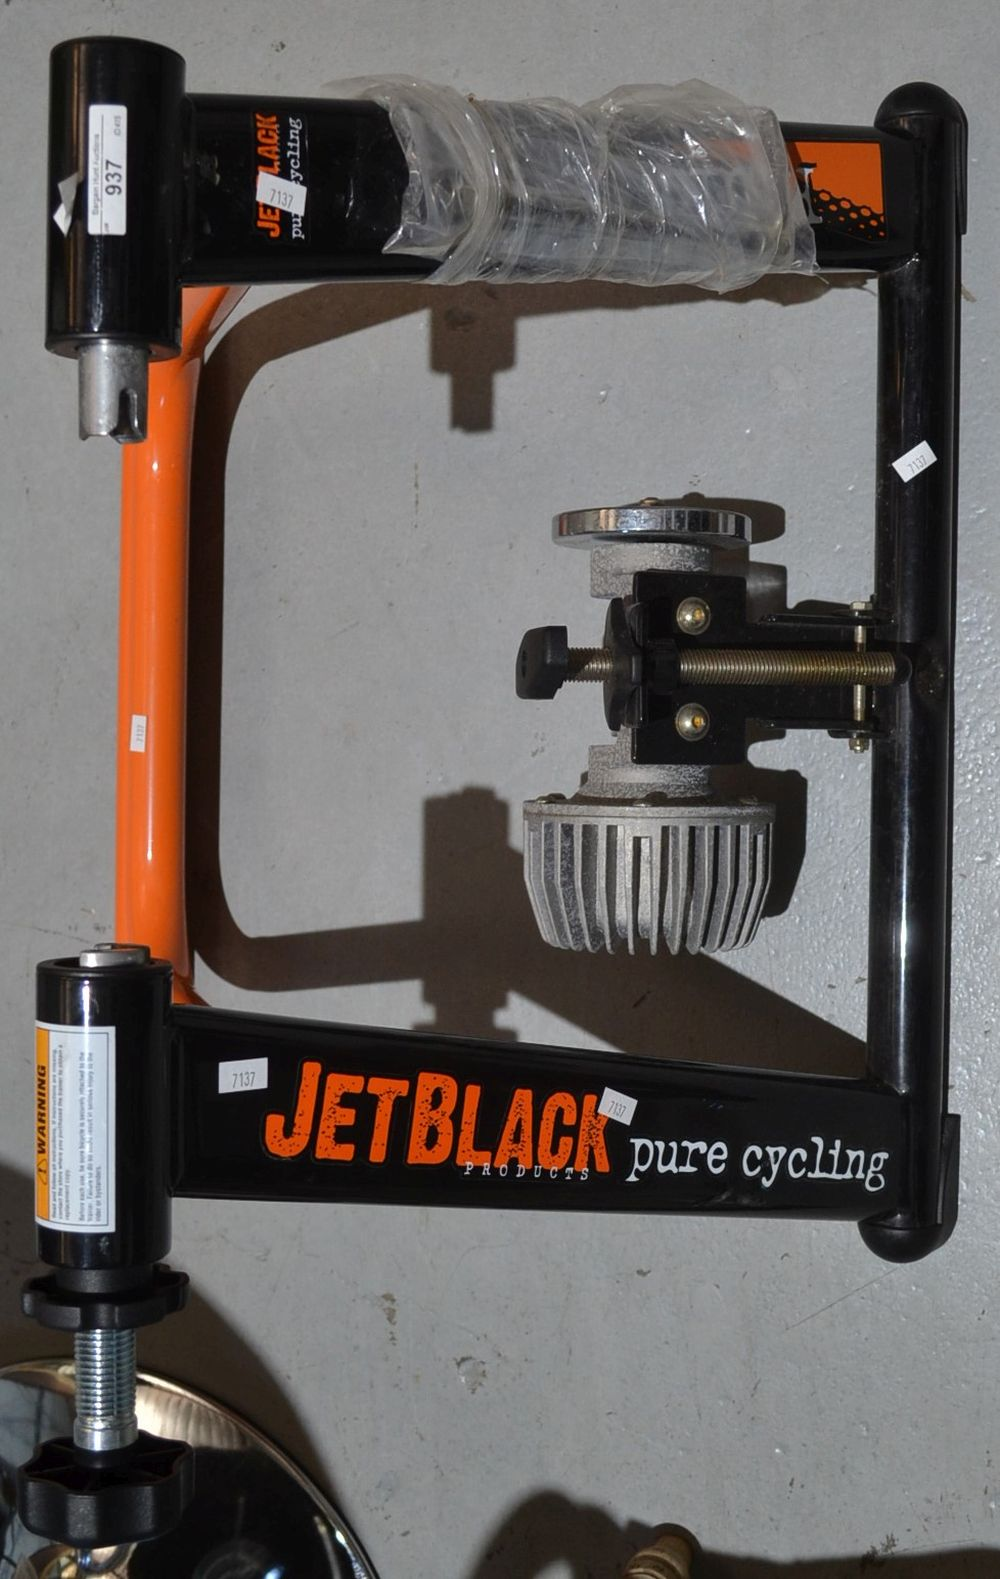 Jet black pure cycling trainer